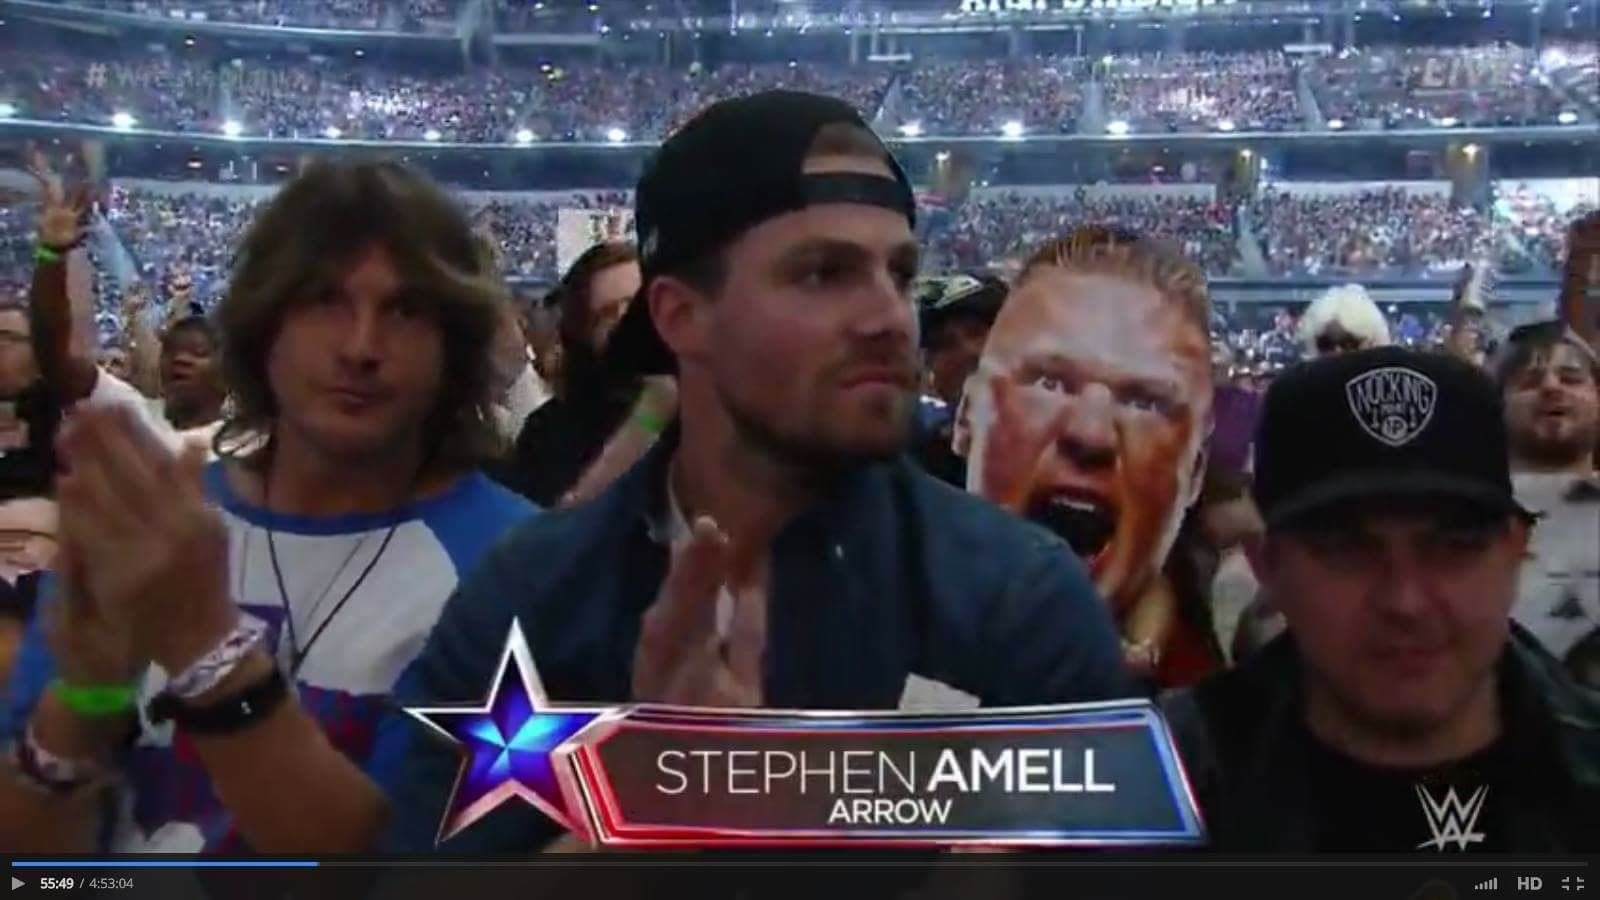 Stephen Amell at Wrestlemania 32